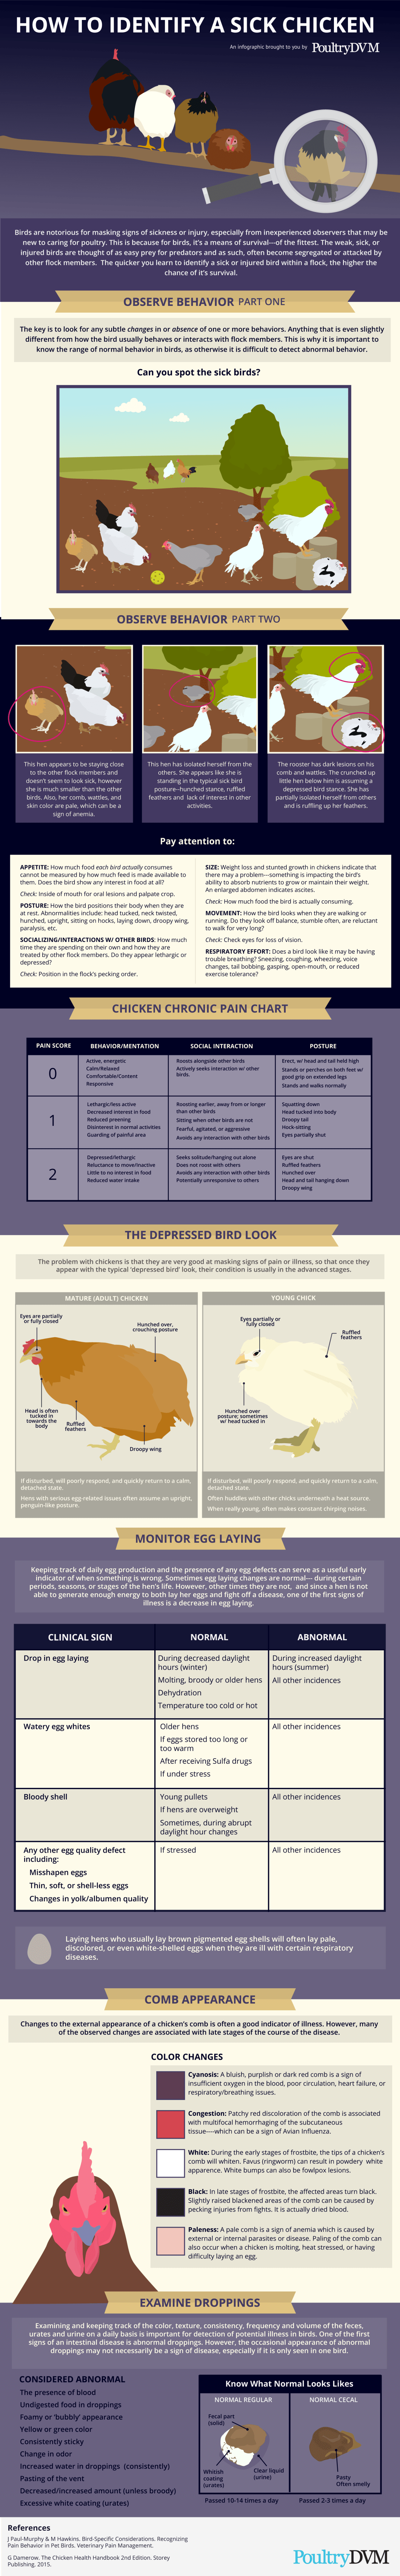 Signs that Identify a Sick Chicken - Infographic